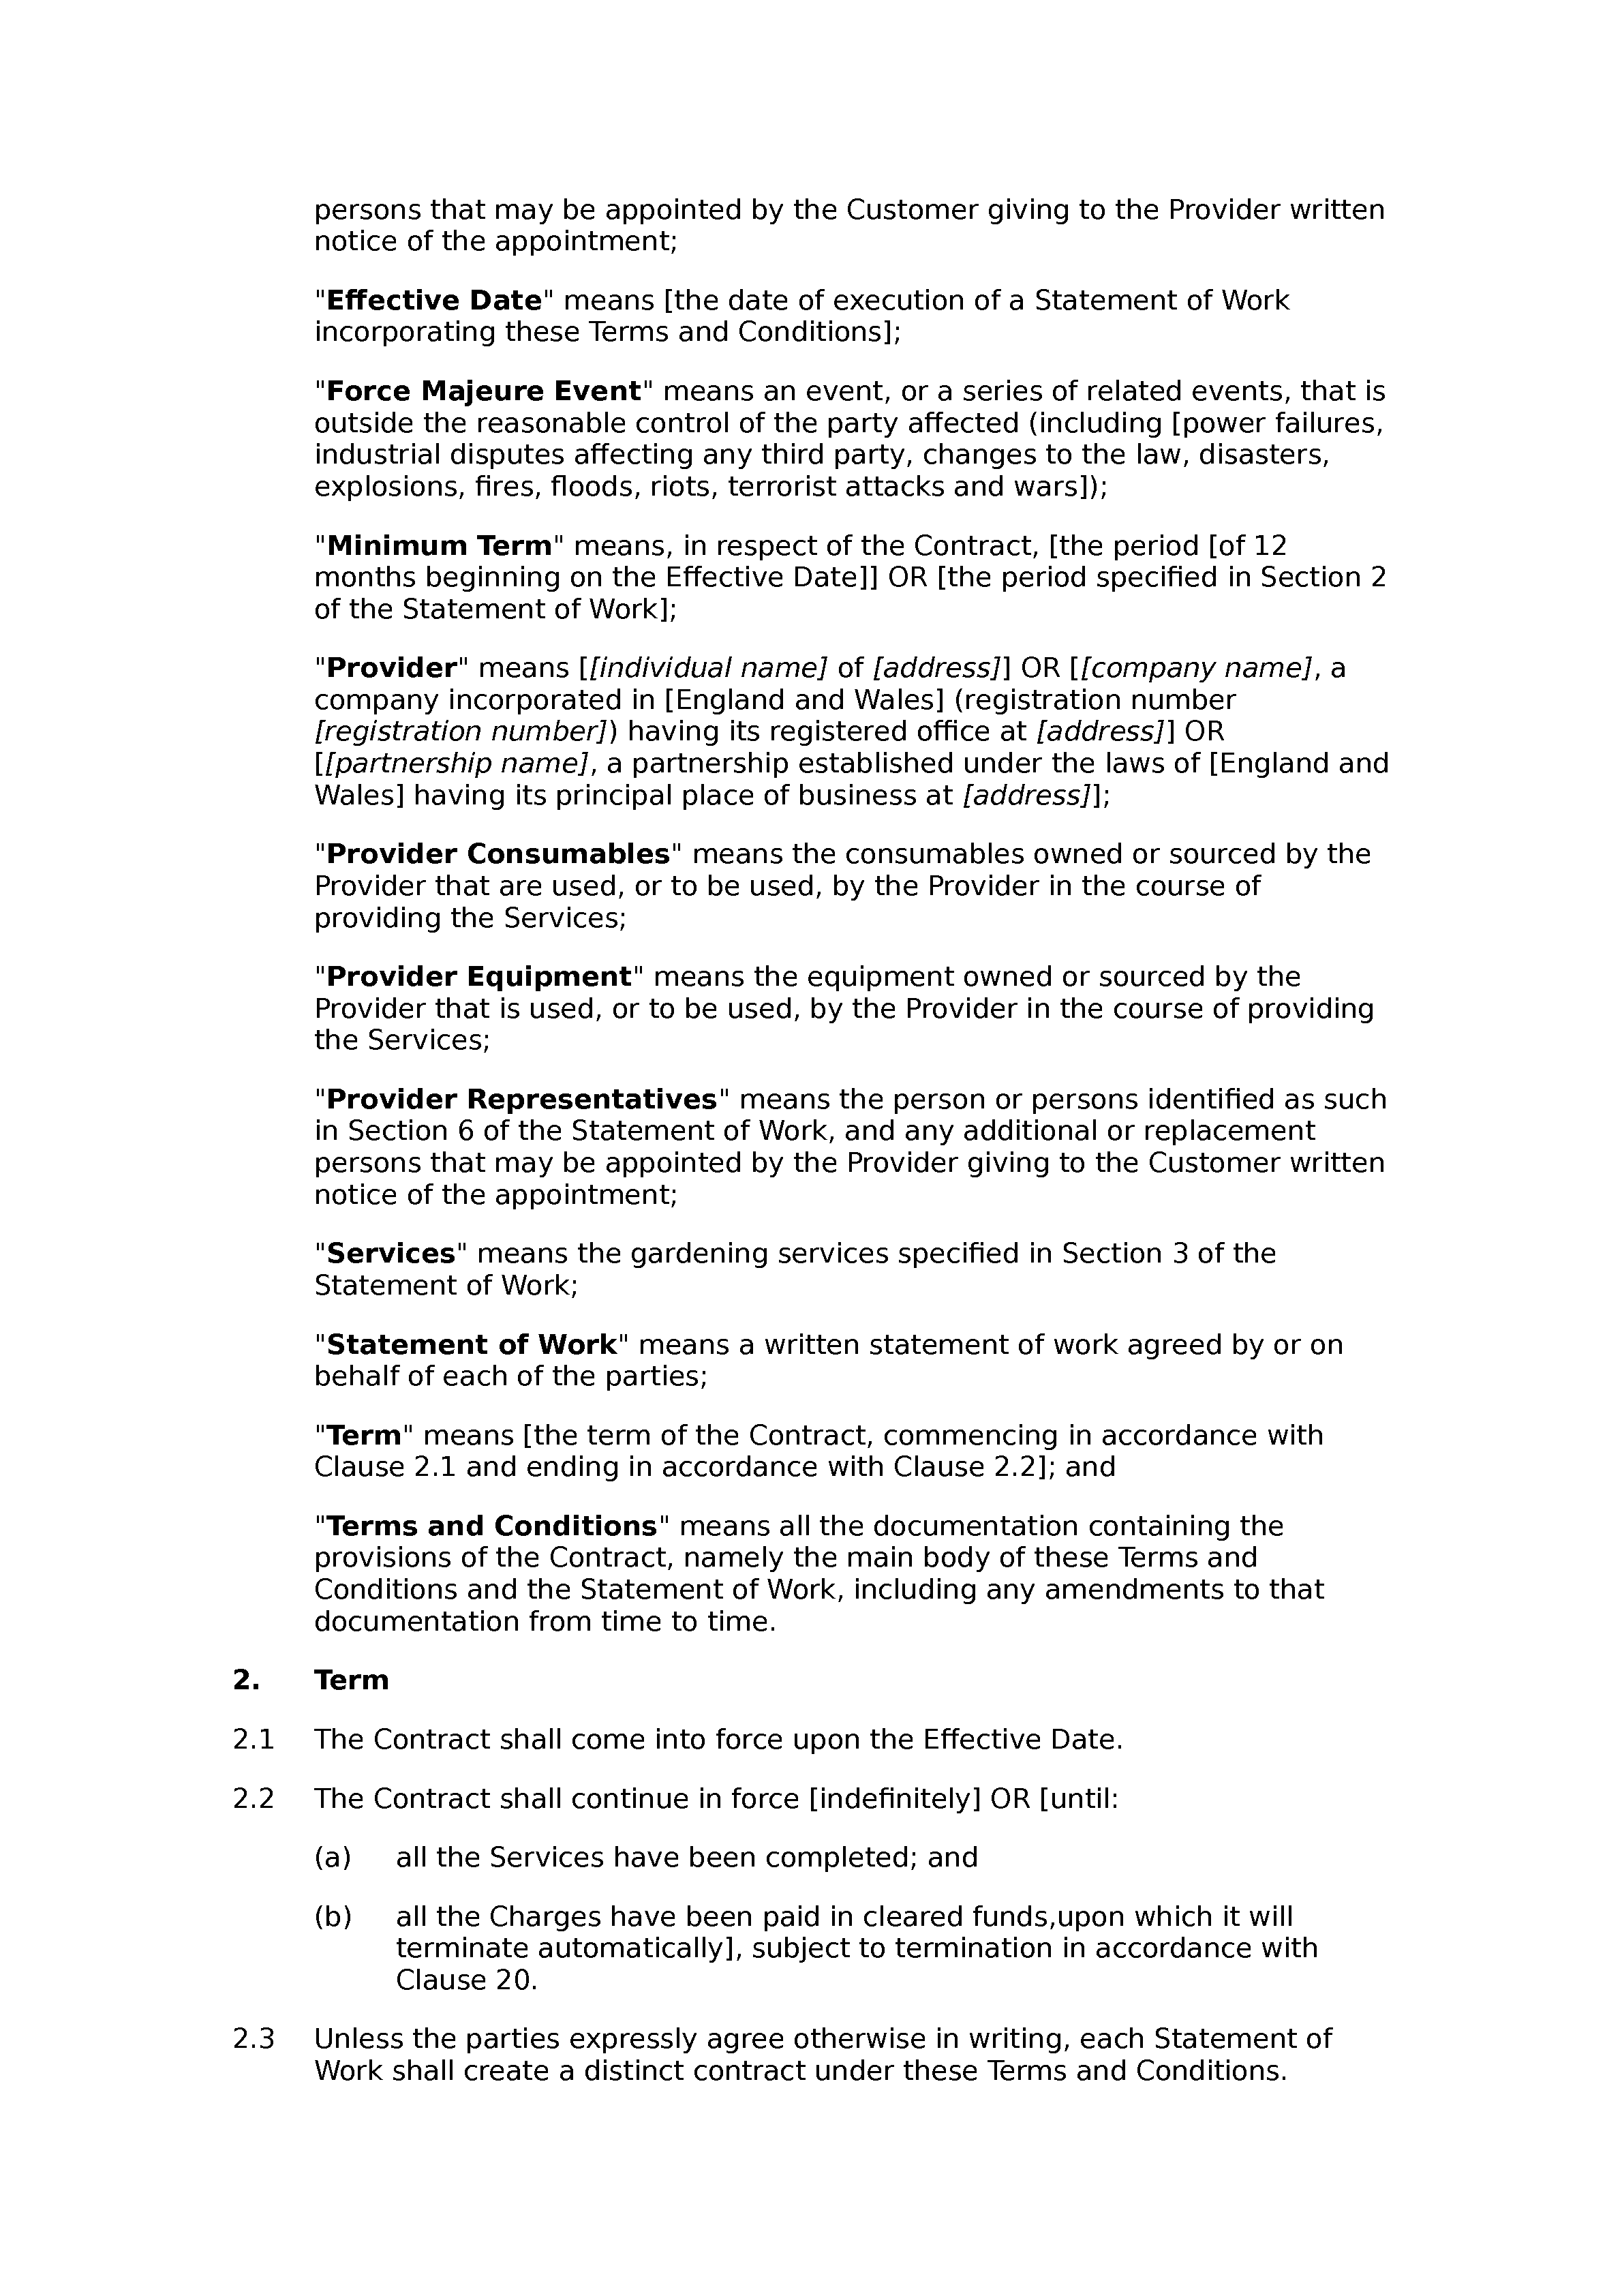 Gardening services terms and conditions document preview